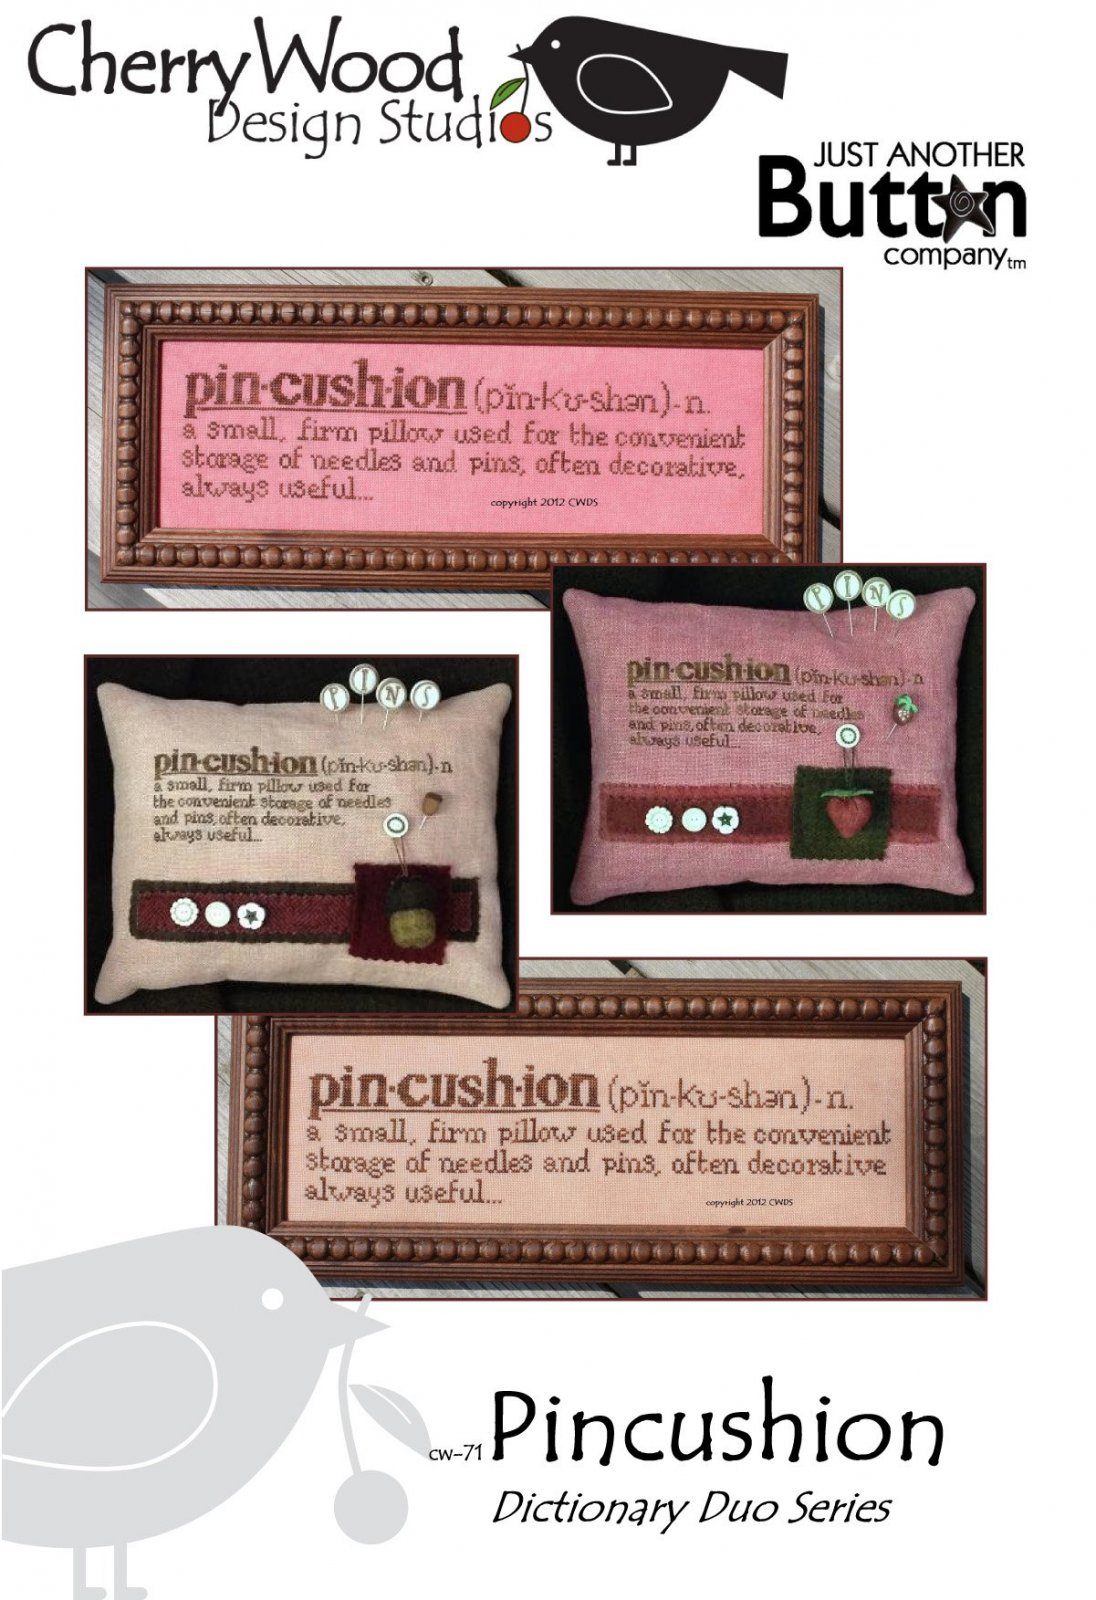 Cherry Wood Designs Pincushion Definition